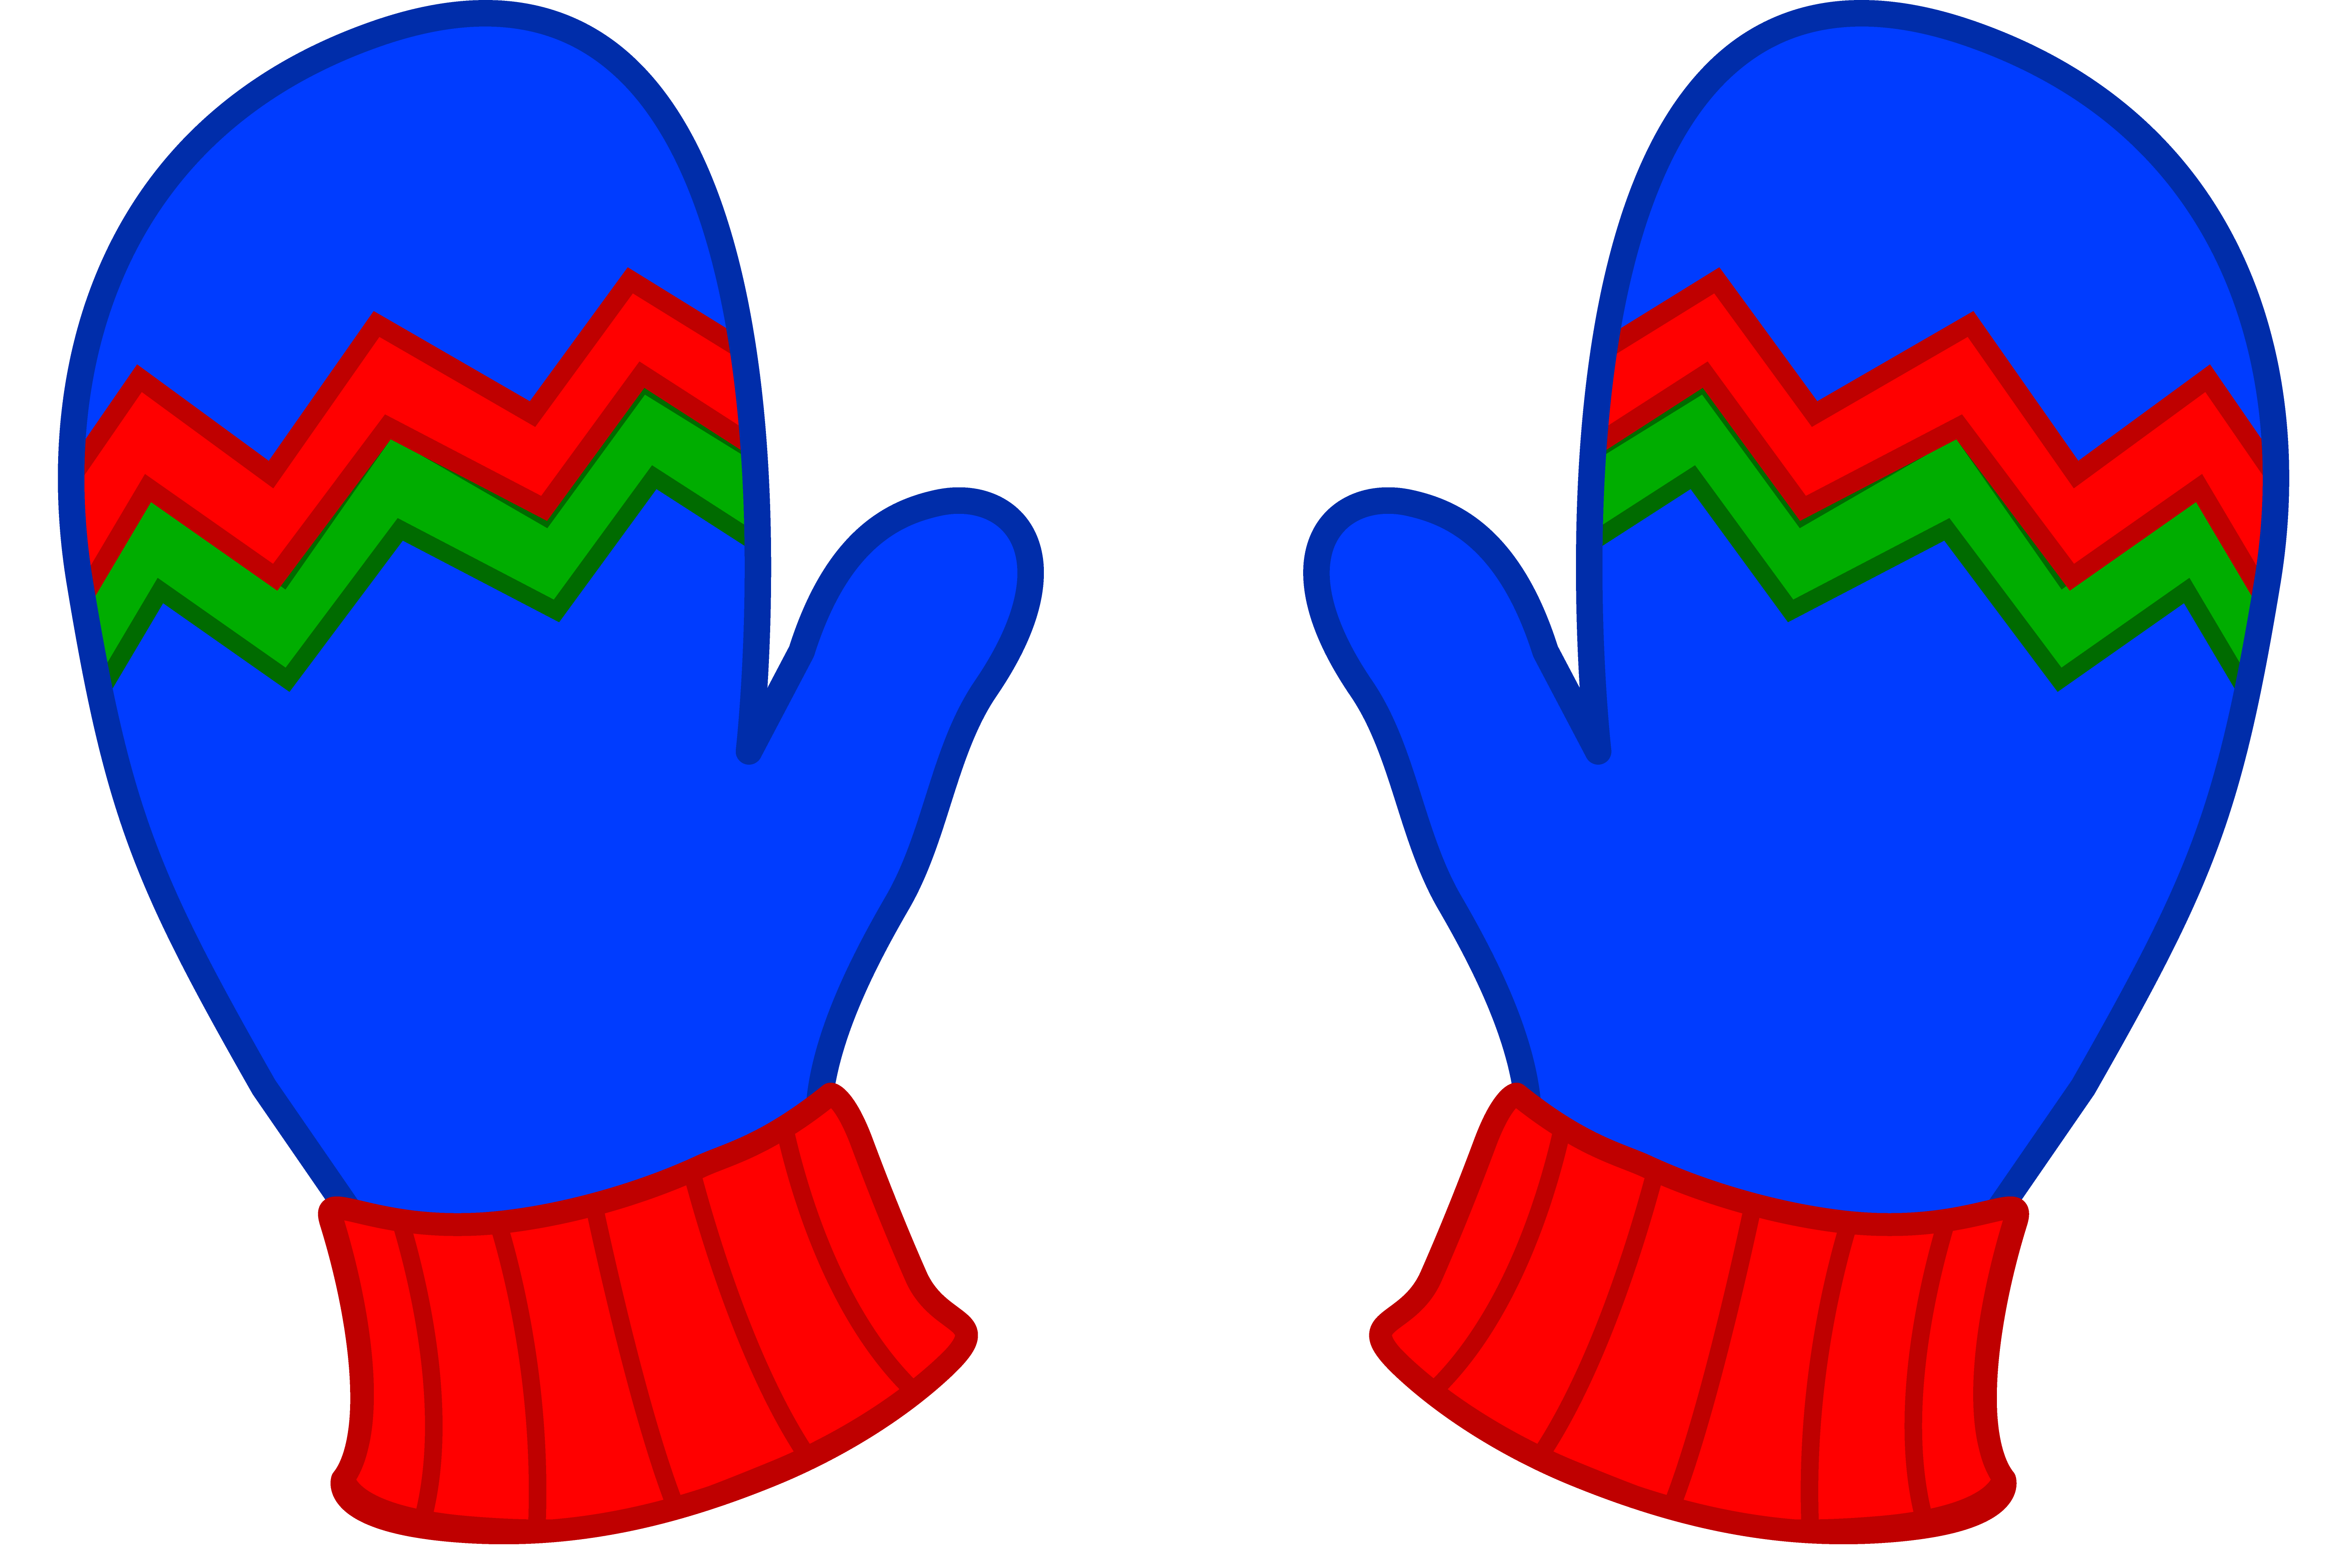 freeuse download Glove clipart article clothing. Gloves pictures clip art